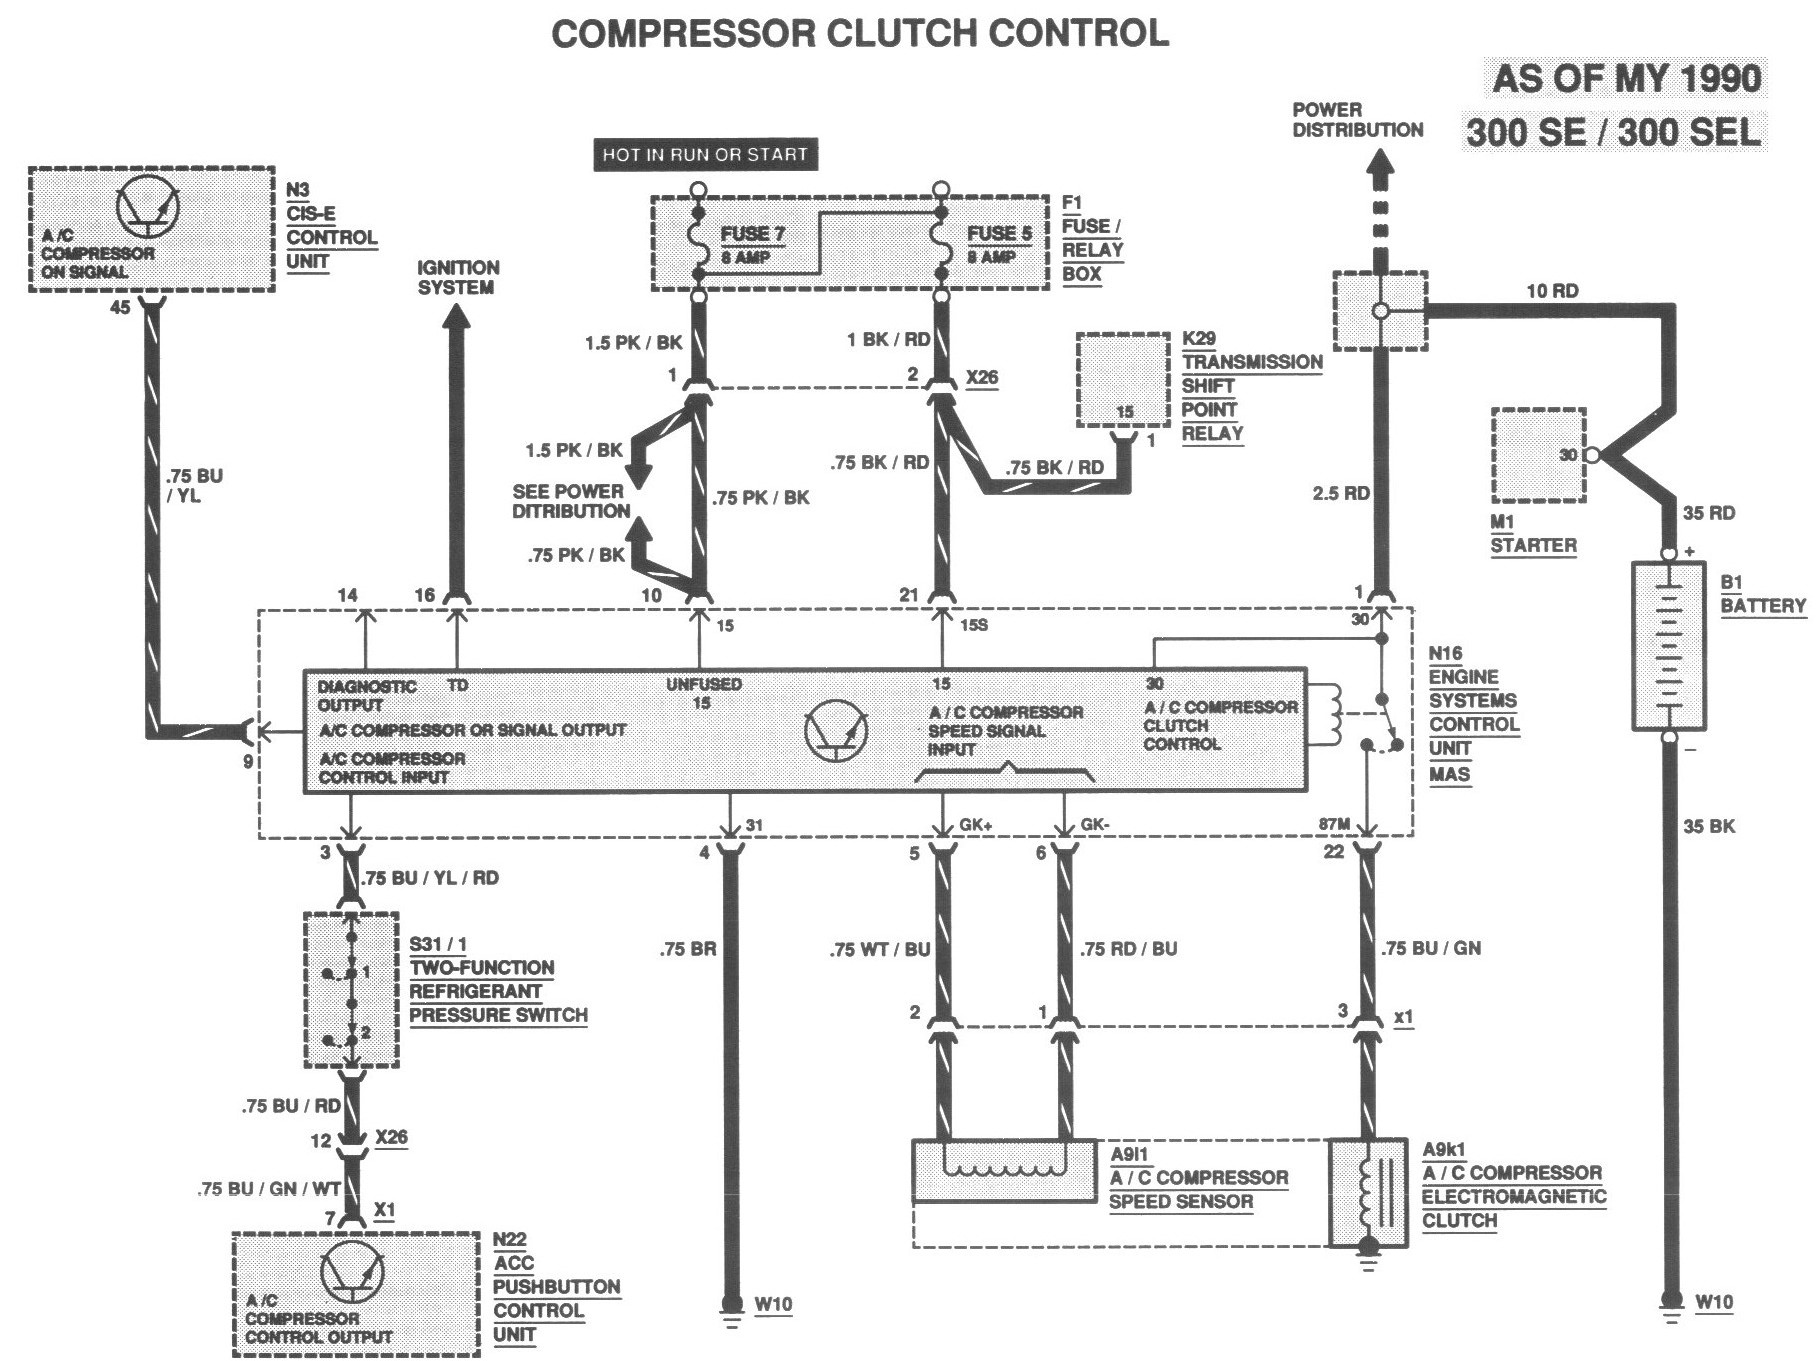 1991 300se defrost heat comes a wiring diagram or schematic